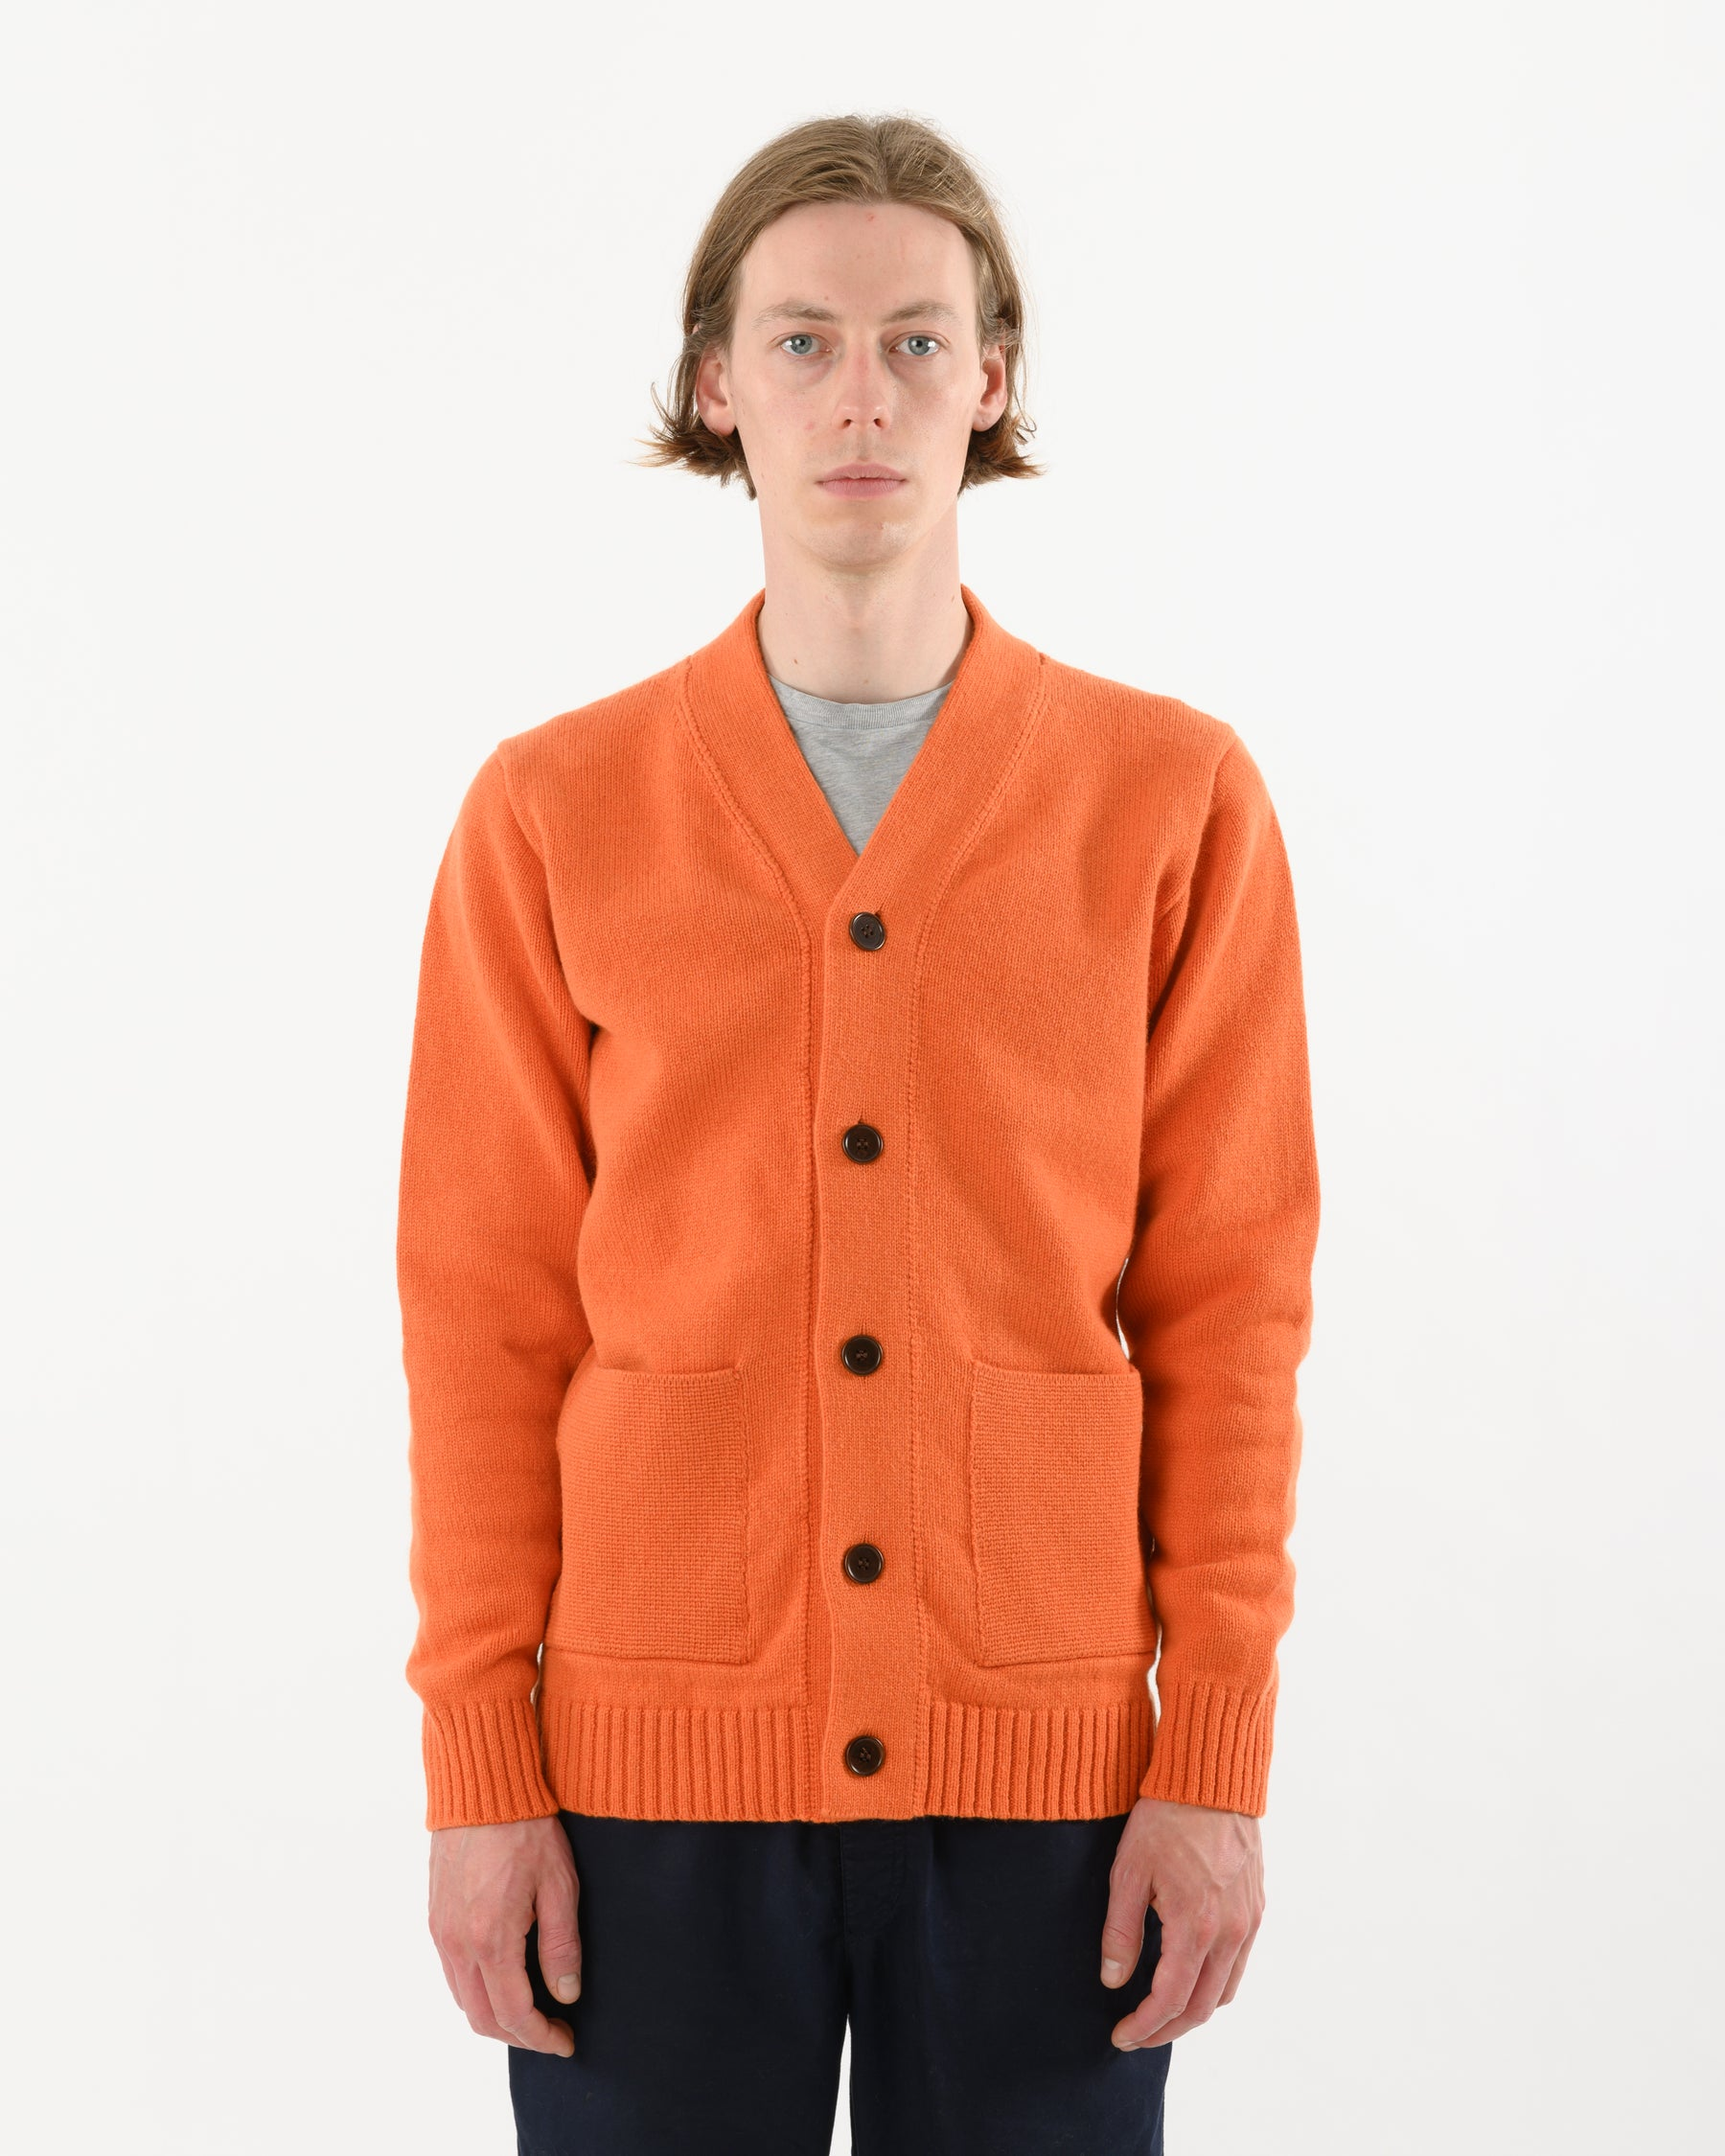 Cardigan Lambswool • Orange